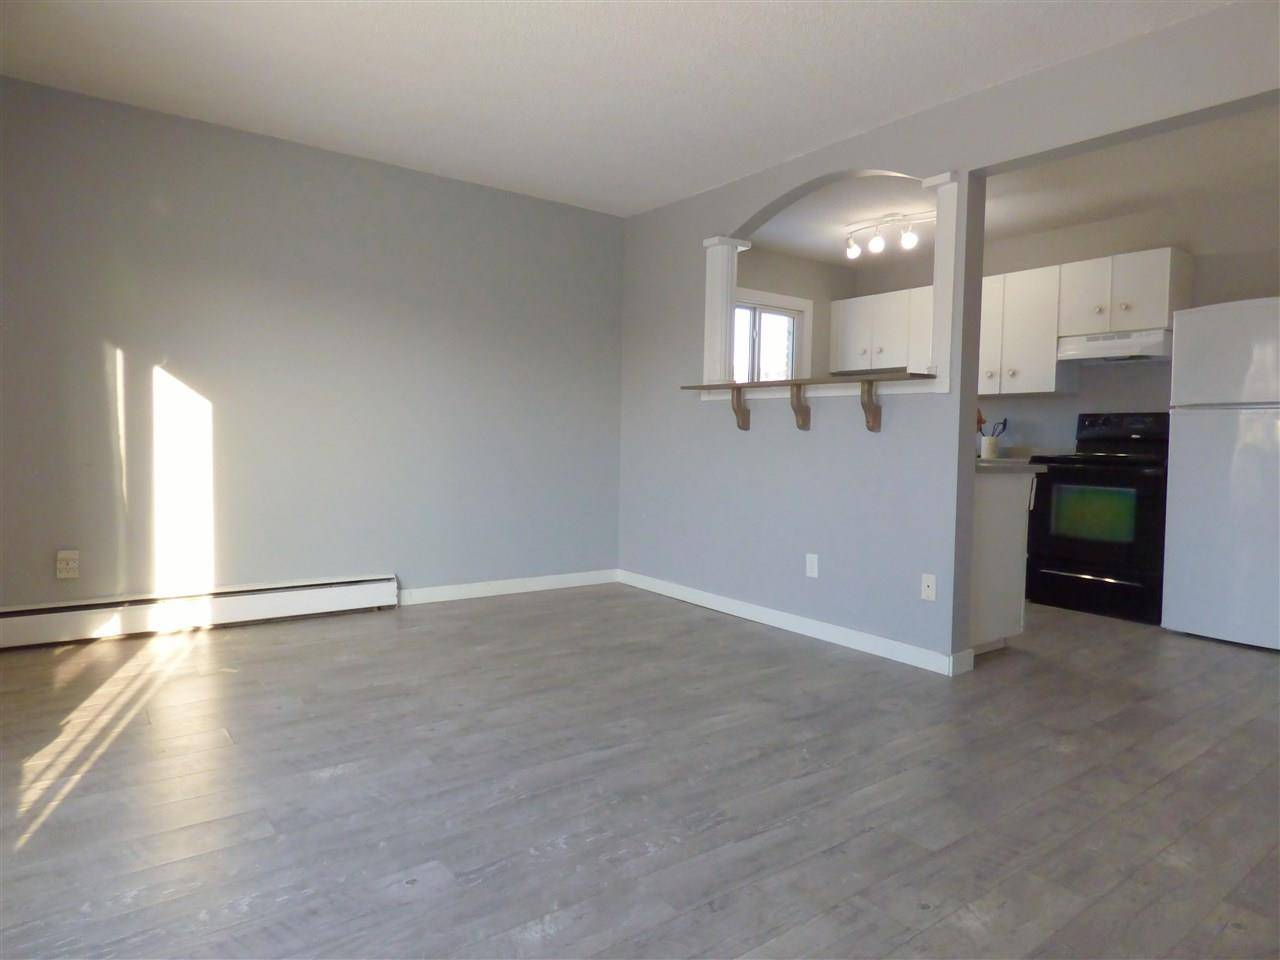 Condo for sale at 11040 129 St Nw Unit 304 Edmonton Alberta - MLS: E4183711